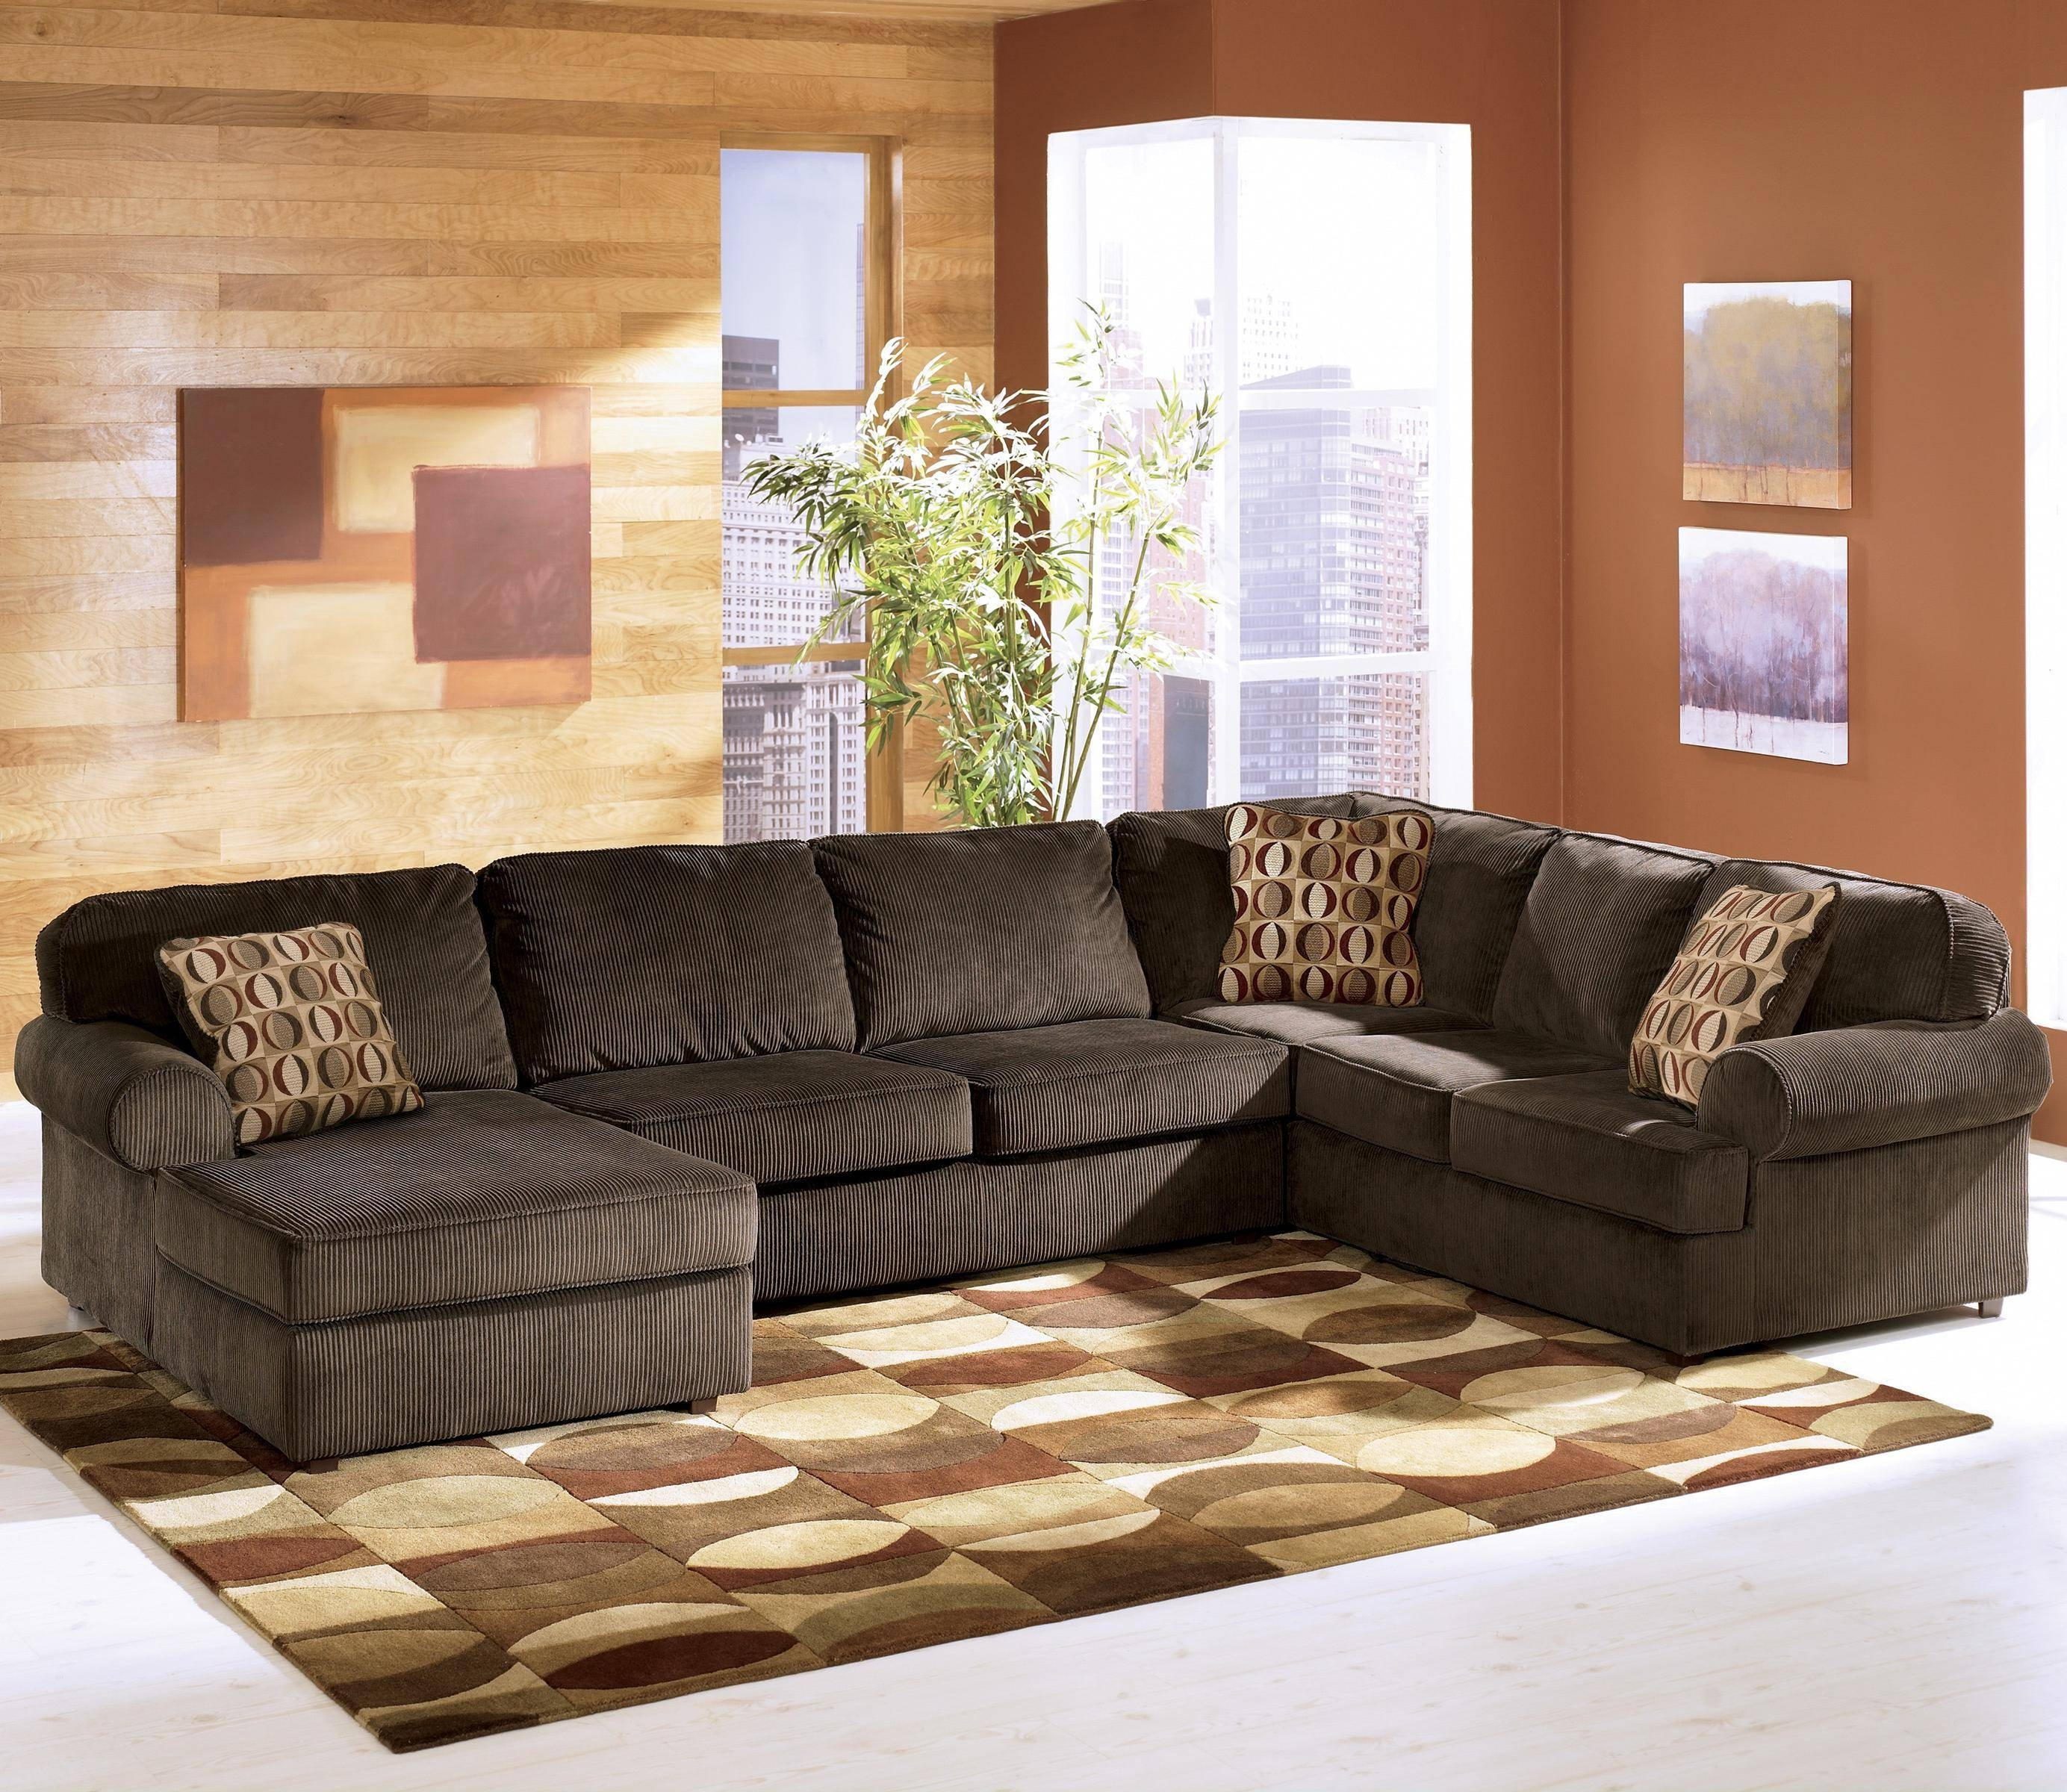 Top 30 of Chocolate Brown Sectional Sofa